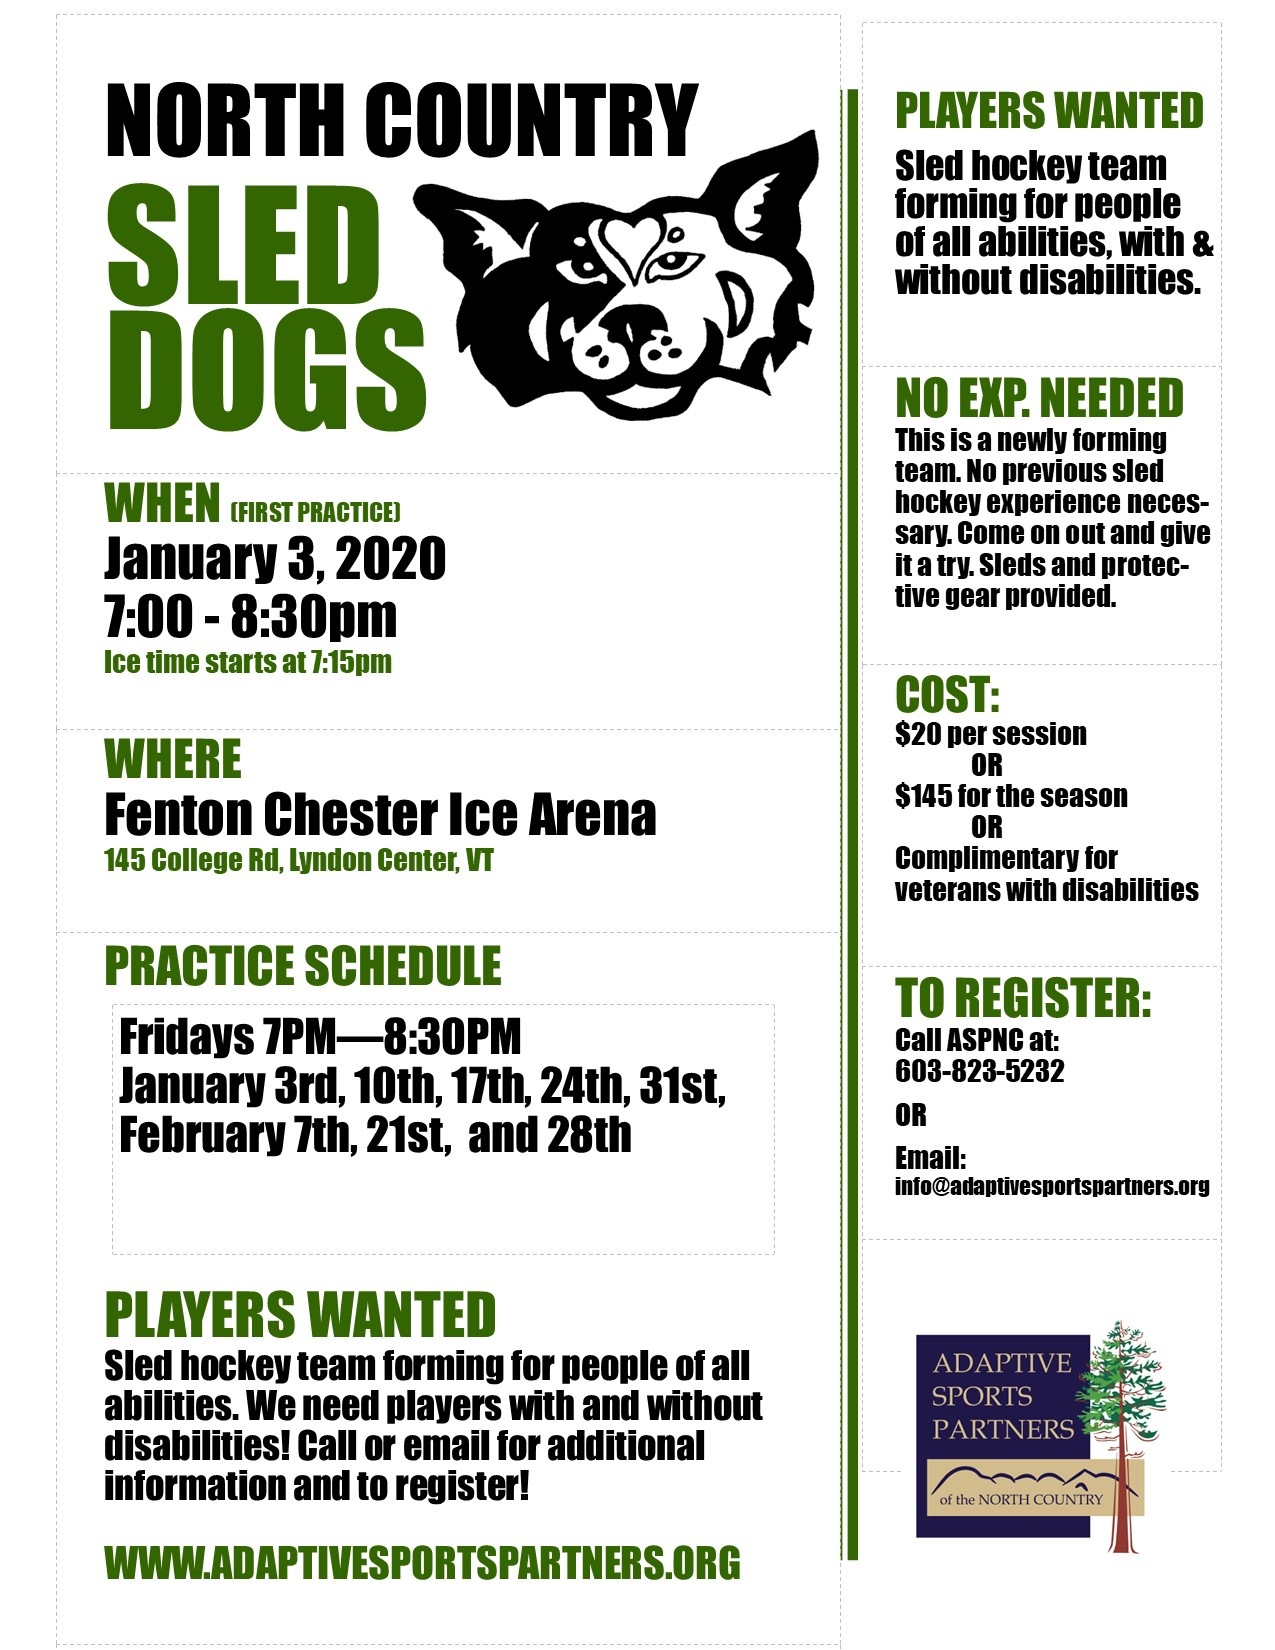 Seasonal Sled Hockey program. The North Country Sled Dogs will be holding (mostly) weekly practice sessions. Come and join the team! Open to all ability levels and to those with and without disabilities. All equipment provided.  Program Dates: January 3, 2020 - February 28, 2020 (Not 2/14)  2020 1/3 - 7:15-8:30P 1/10 - 7:15-8:30P 1/17 - 7:15-8:30P 1/24 - 7:15-8:30P 1/31 - 7:15-8:30P 2/7 - 7:15-8:30P 2/21 - 7:15-8:30P 2/28 - 7:15-8:30P  Pre-registration necessary. Please contact the ASPNC Office at 603-823-5232, email info@adaptivesportspartners.org, or register online at https://aspnc.z2systems.com/eventReg.jsp?event=949&  Cost: $145 for the season (8 sessions) paid in advance or $20 per session paid as you go.   *A USA Hockey membership is also required, the fee for this is $40.  (https://www.usahockeyregistration.com/register_form_input.action)  *Annual membership required for participation in any ASPNC program activities. $25 annually  ASPNC is committed to providing sport, recreation, and wellness opportunities for any and all people of all abilities. We believe strongly that program fee should not be an additional barrier to participation. If financial assistance is needed please contact ASPNC by email at info@adaptivesportspartners.org.